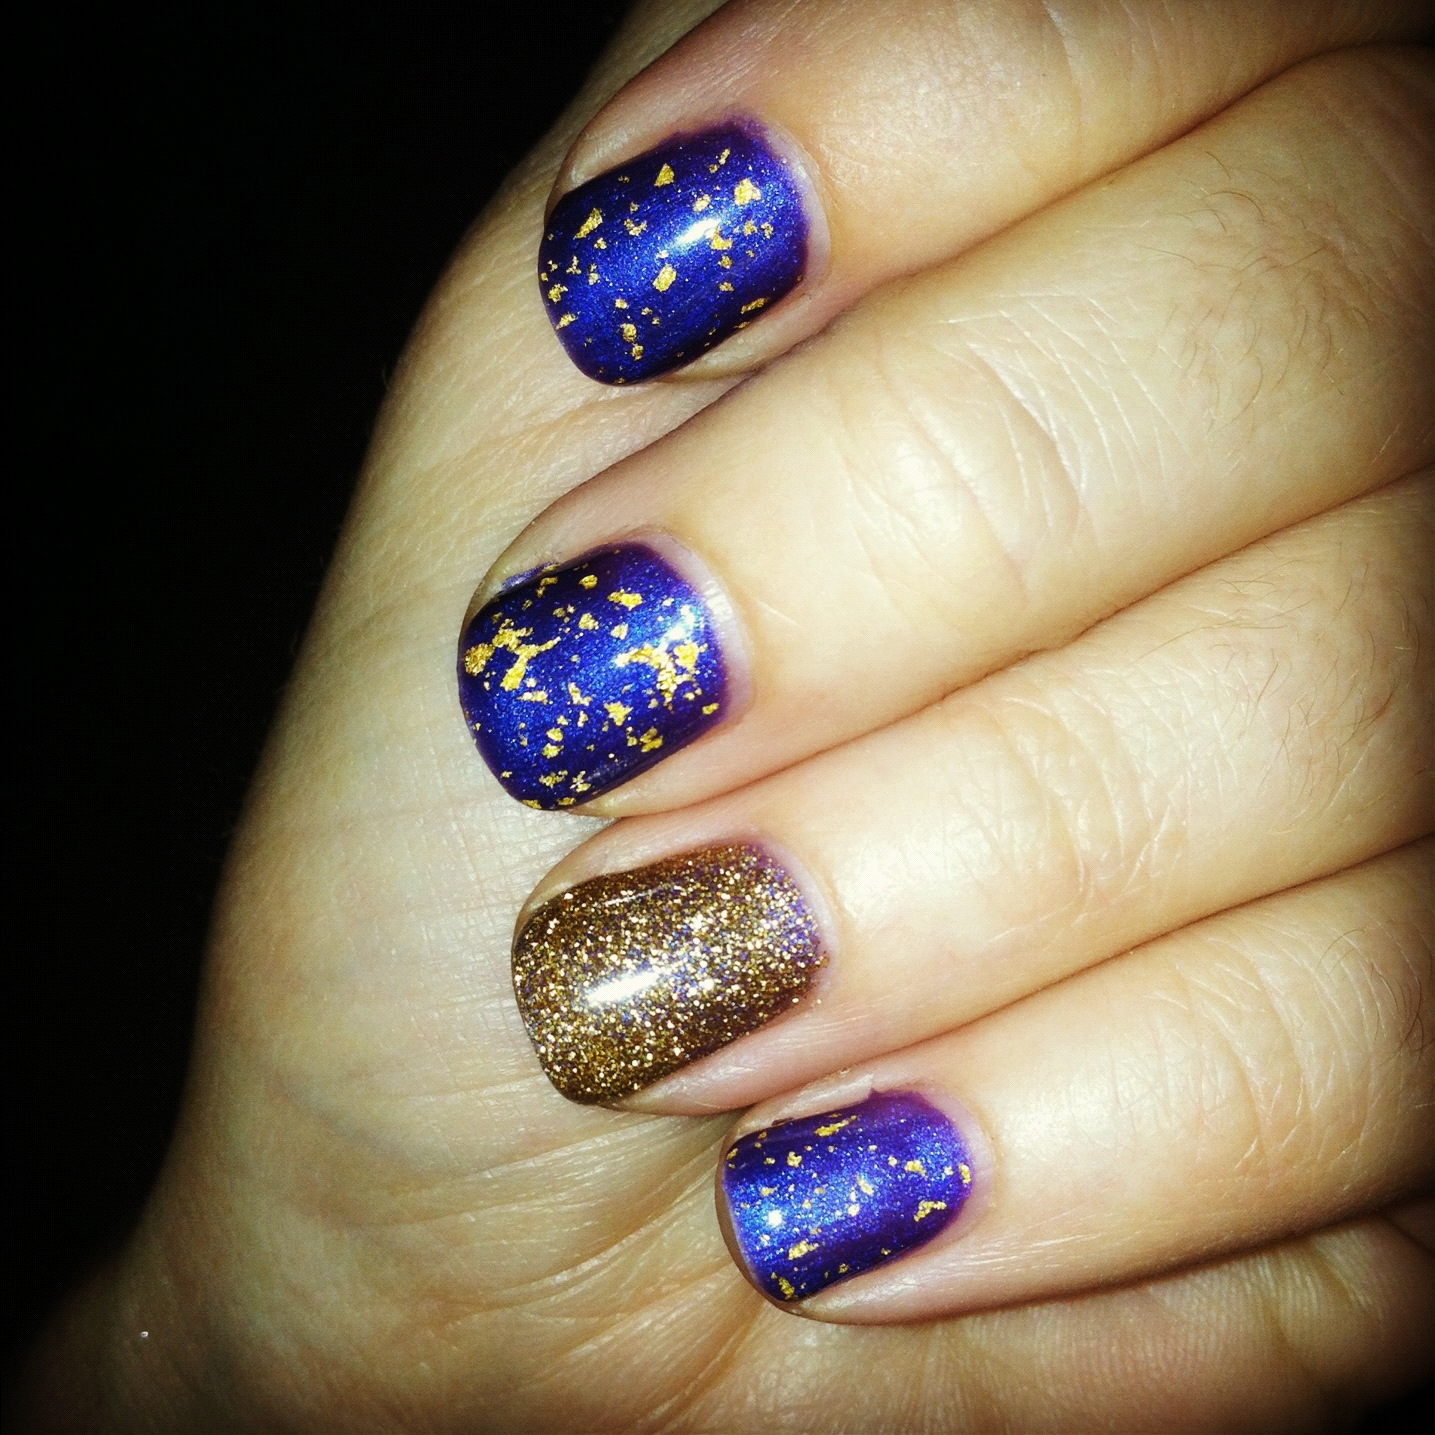 In other news- check out this sweet Shellac manicure I got today!